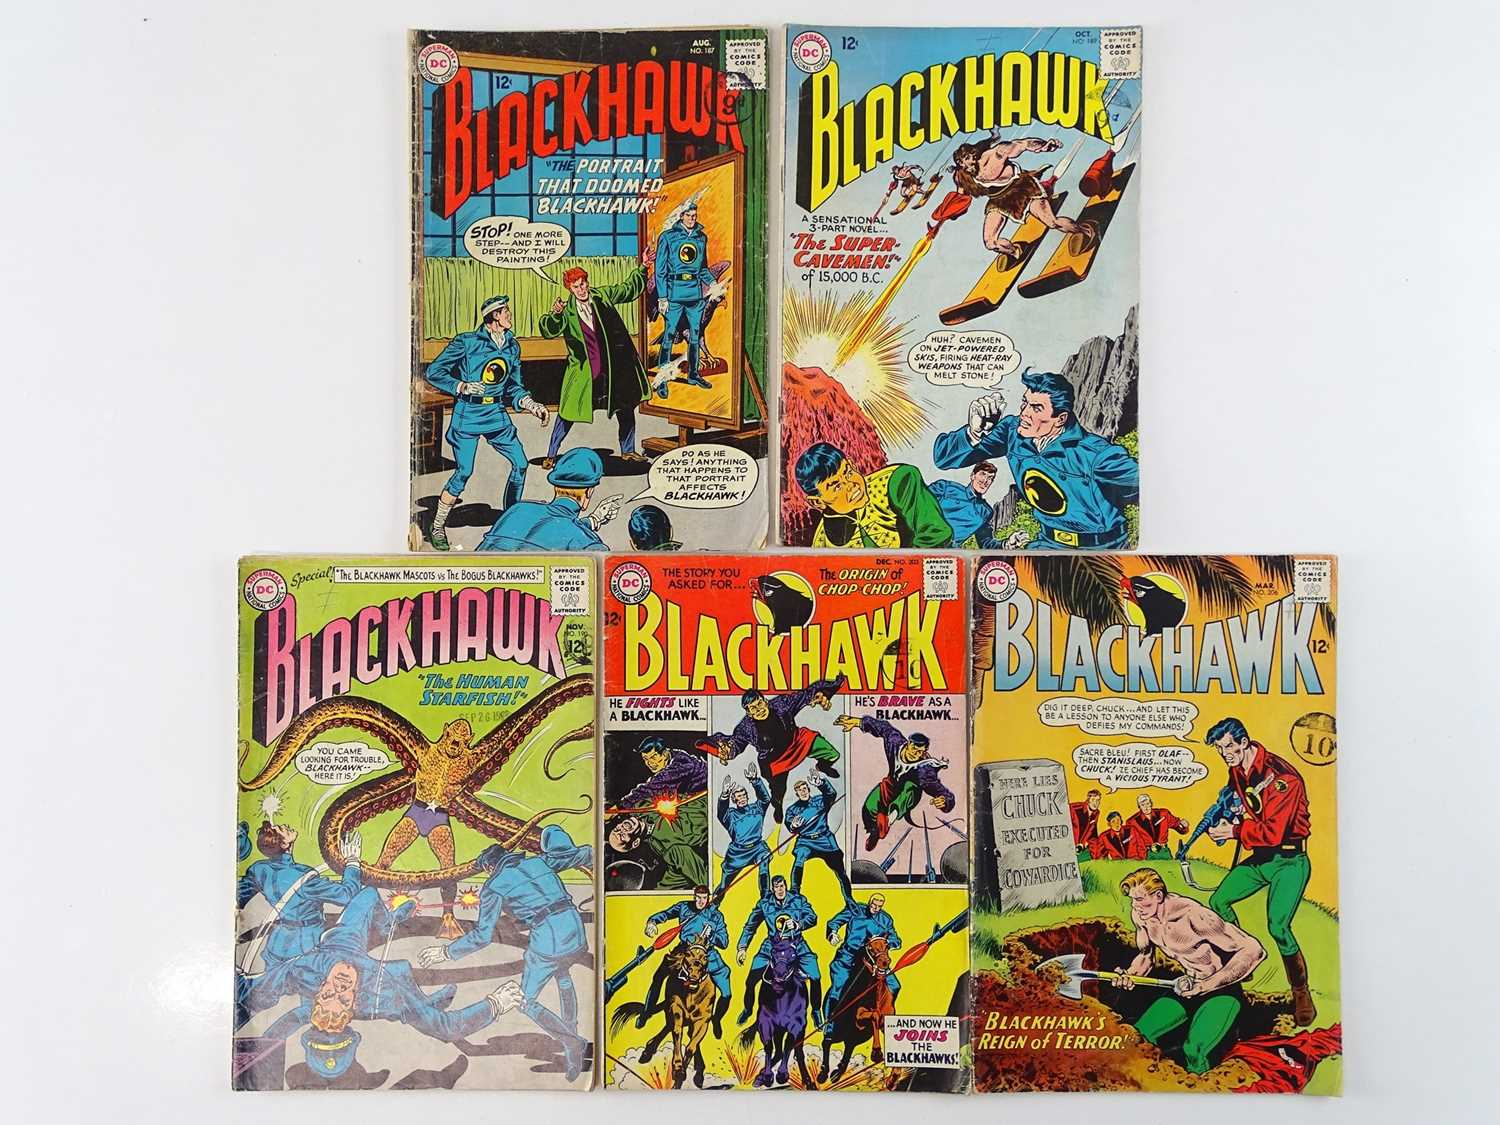 BLACKHAWK #187, 189, 190, 203, 206 - (5 in Lot) - (1963/65 - DC - UK Cover Price) - Includes